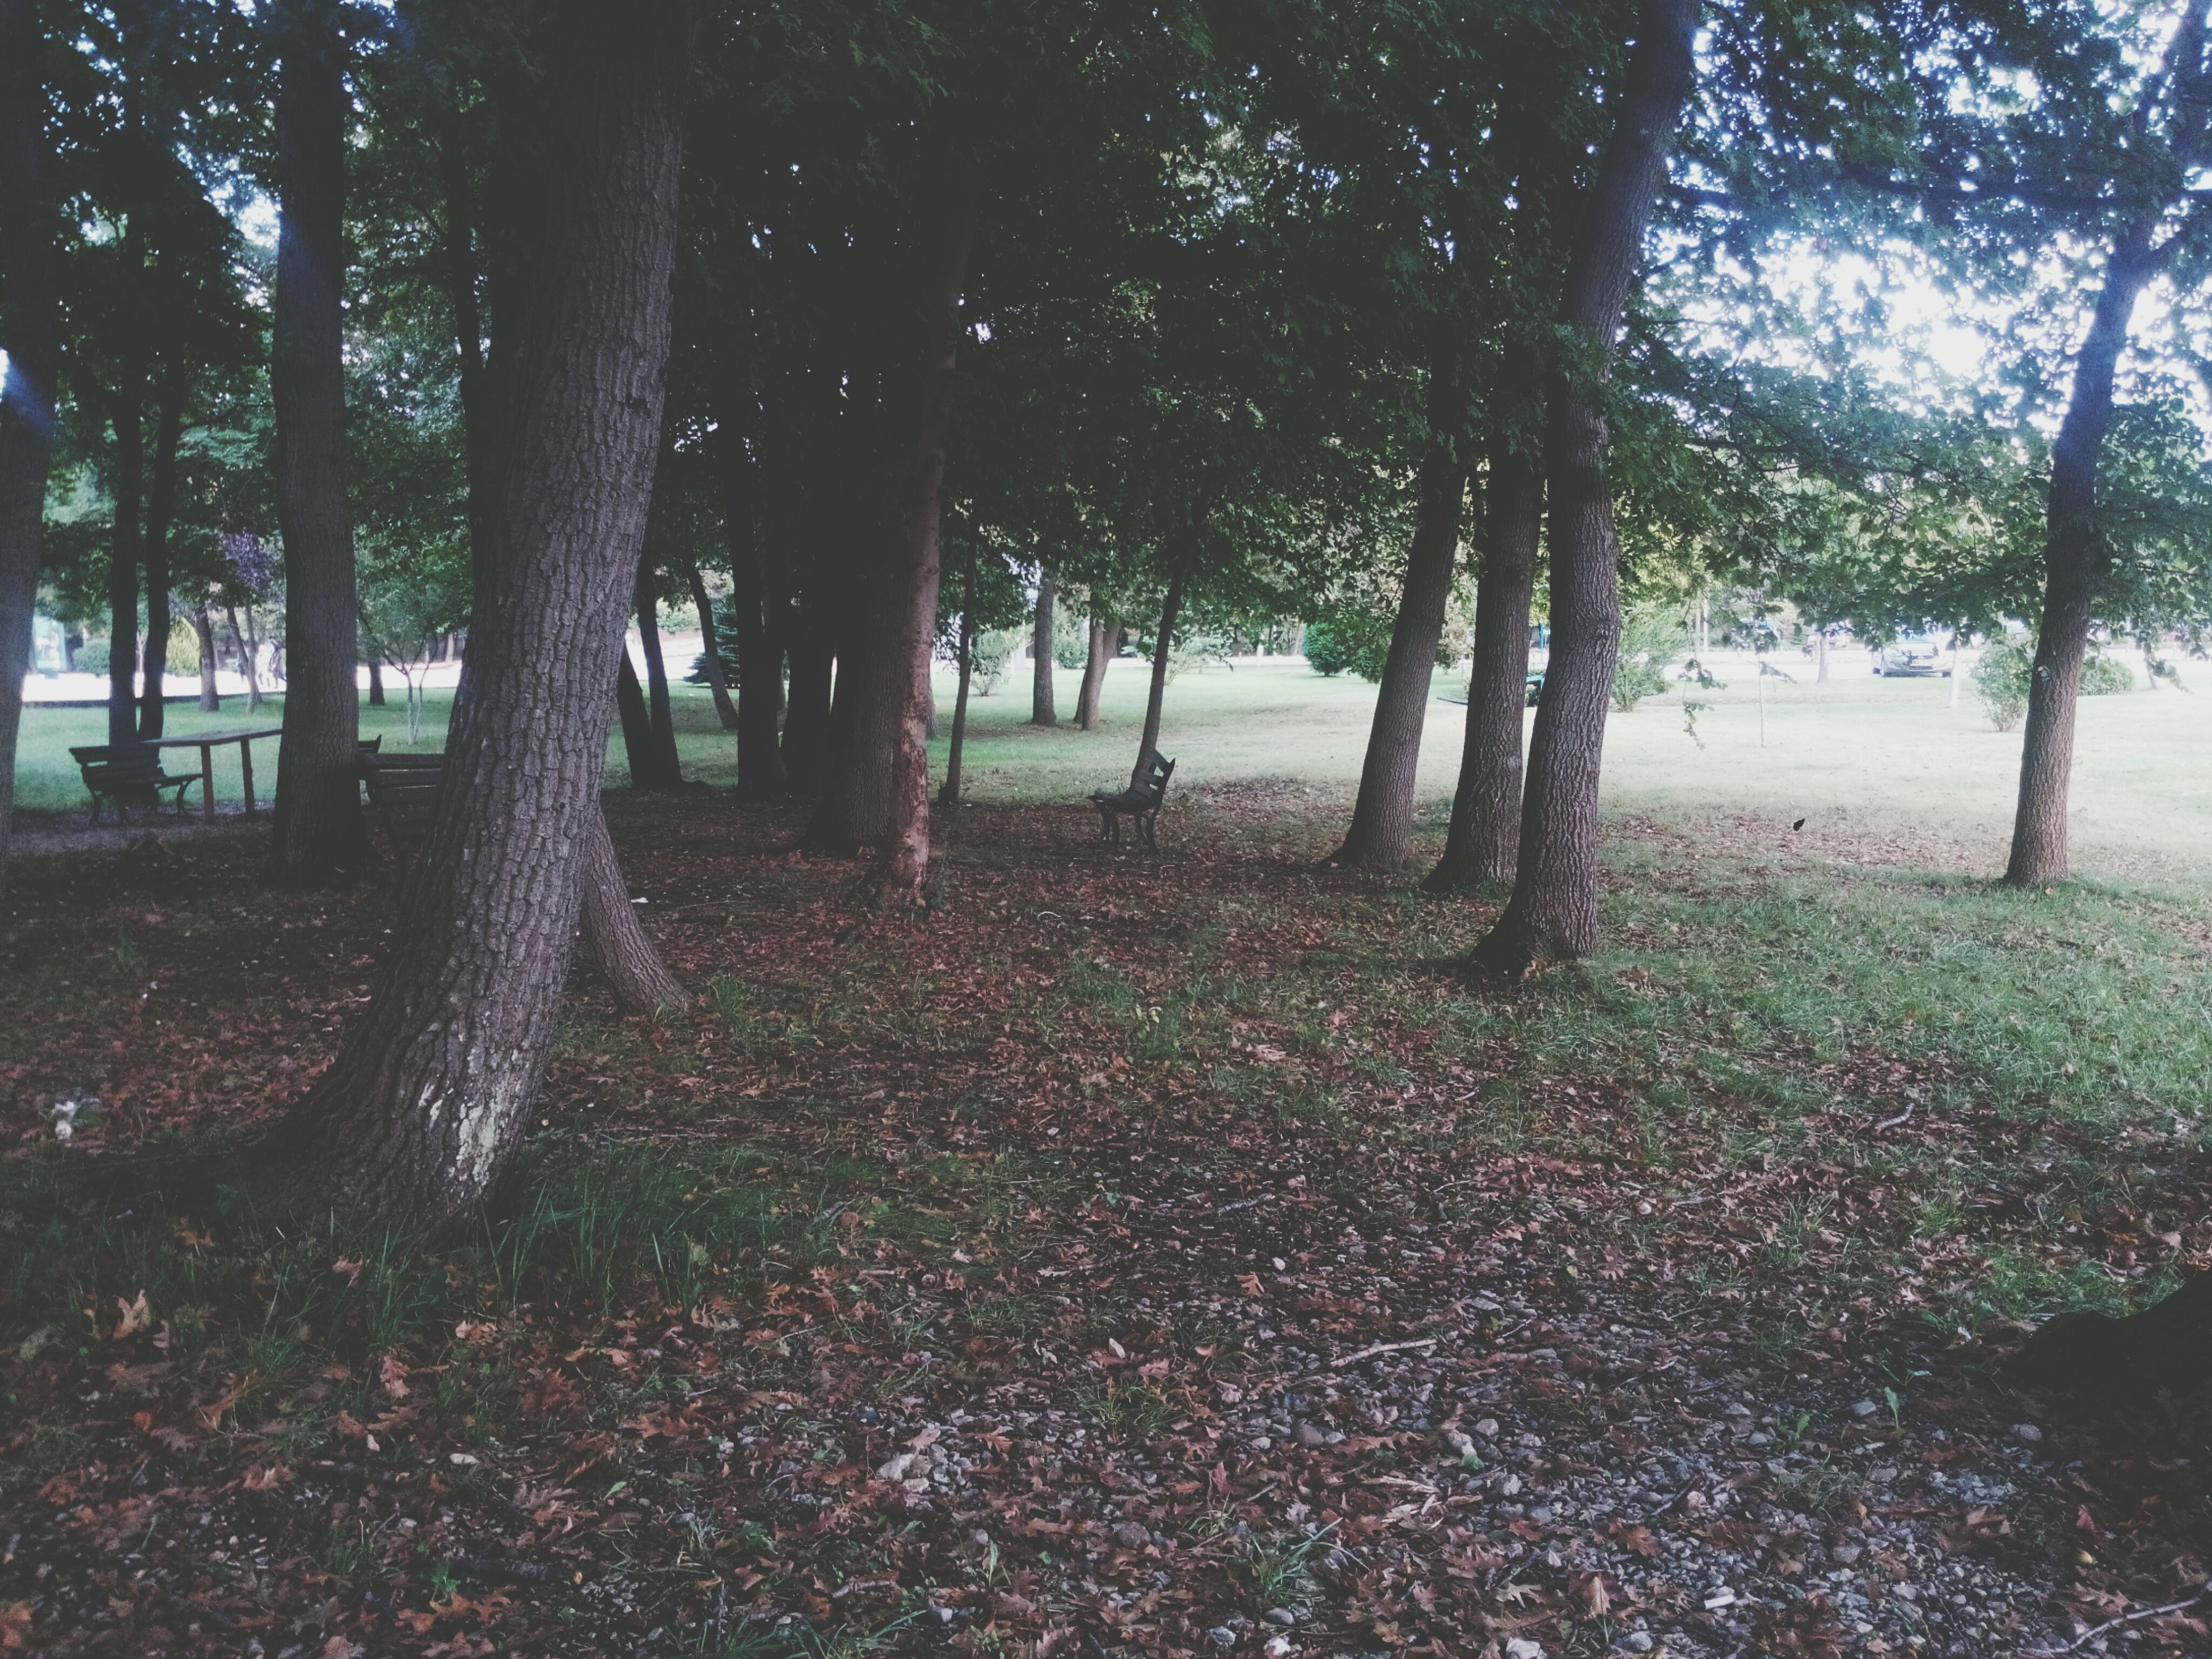 tree, tree trunk, tranquility, growth, nature, tranquil scene, beauty in nature, park - man made space, branch, scenics, sunlight, no people, day, outdoors, field, leaf, shadow, landscape, idyllic, water